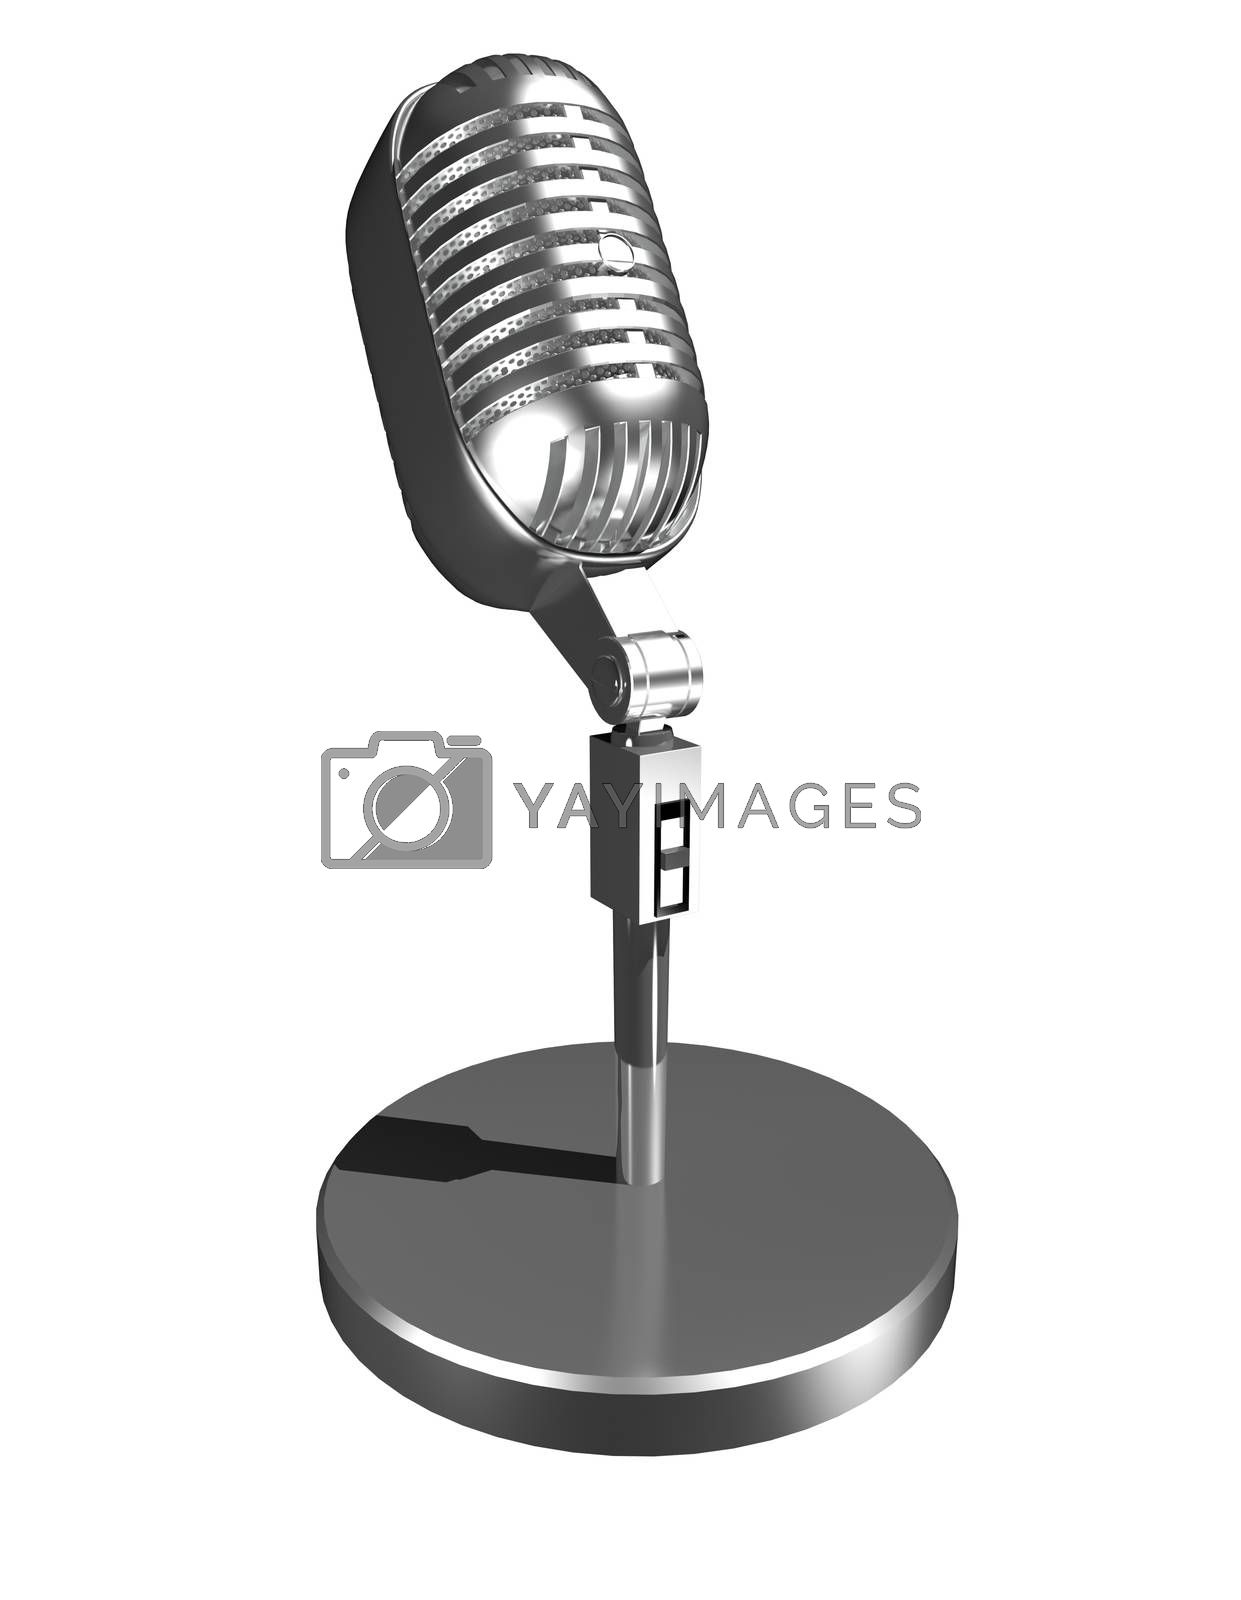 3d illustration of a microphone on a white background